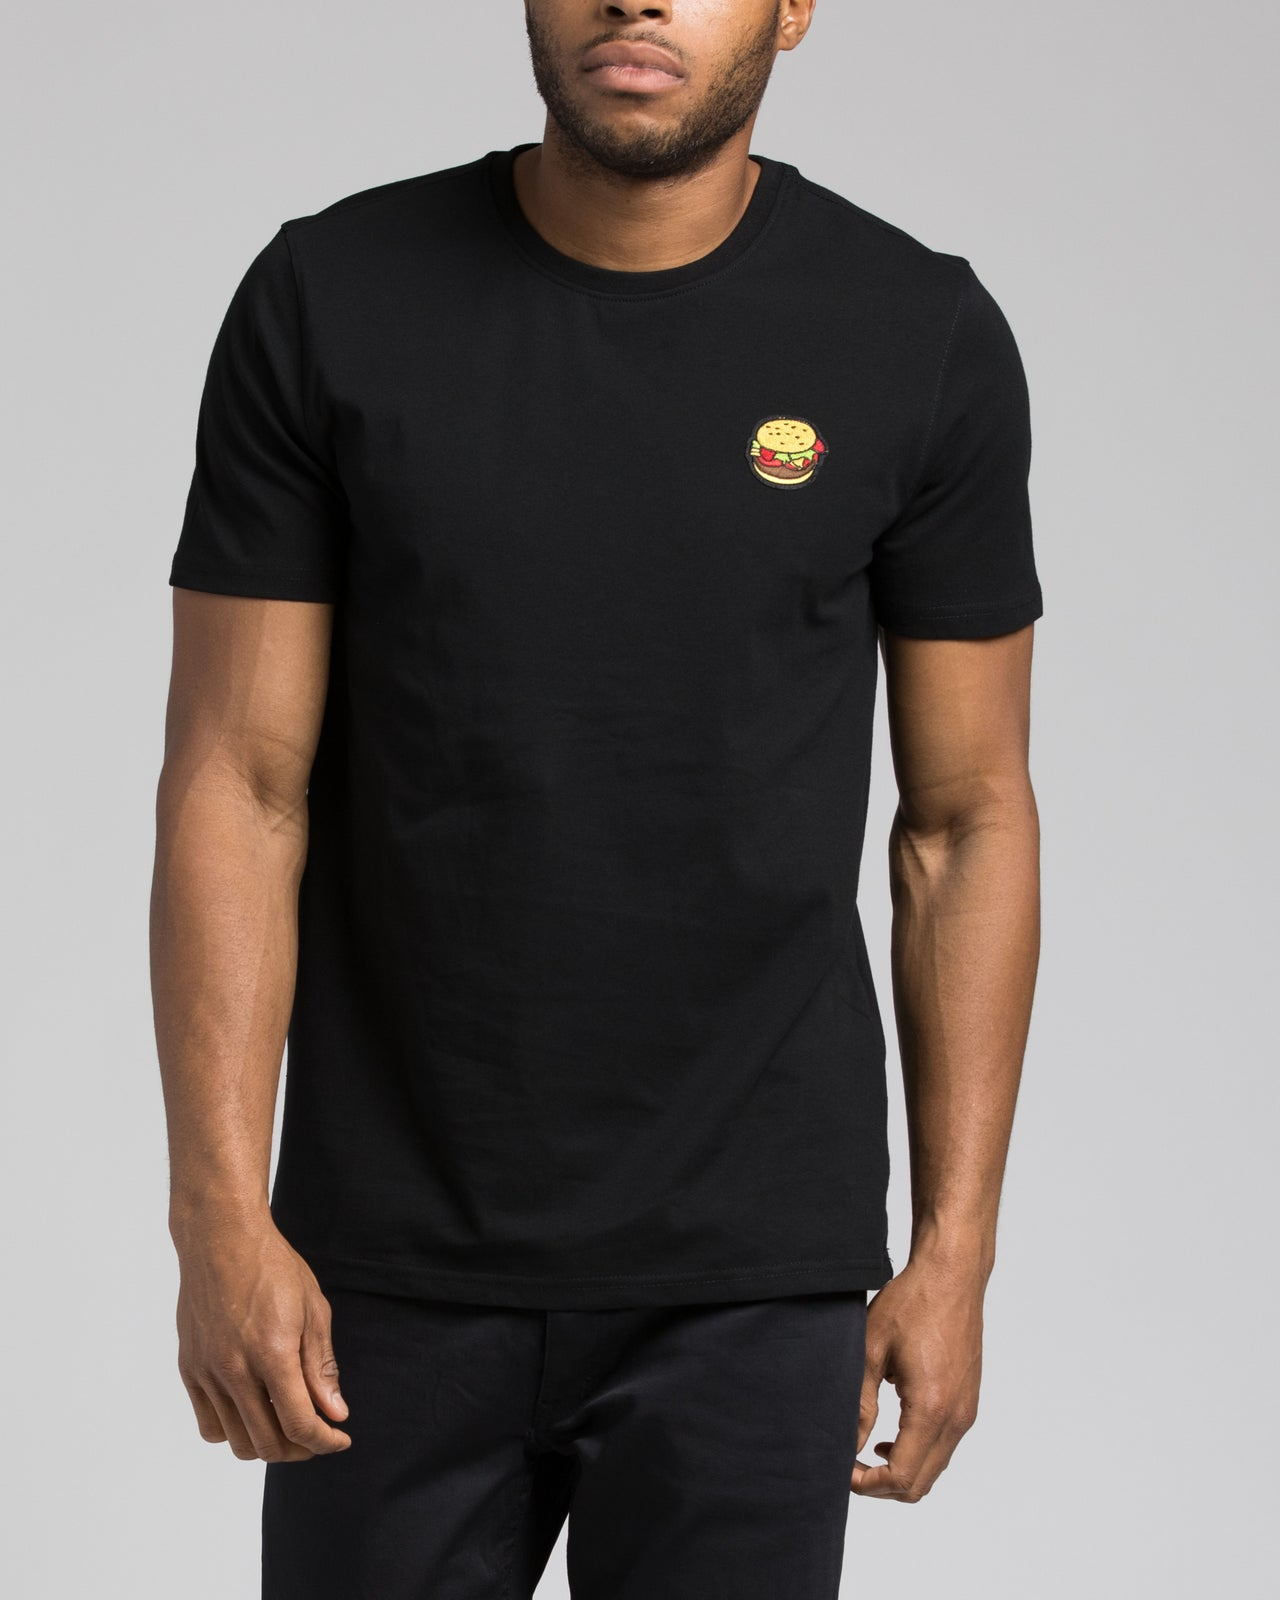 Burger Patch tee - Color: Black | Black